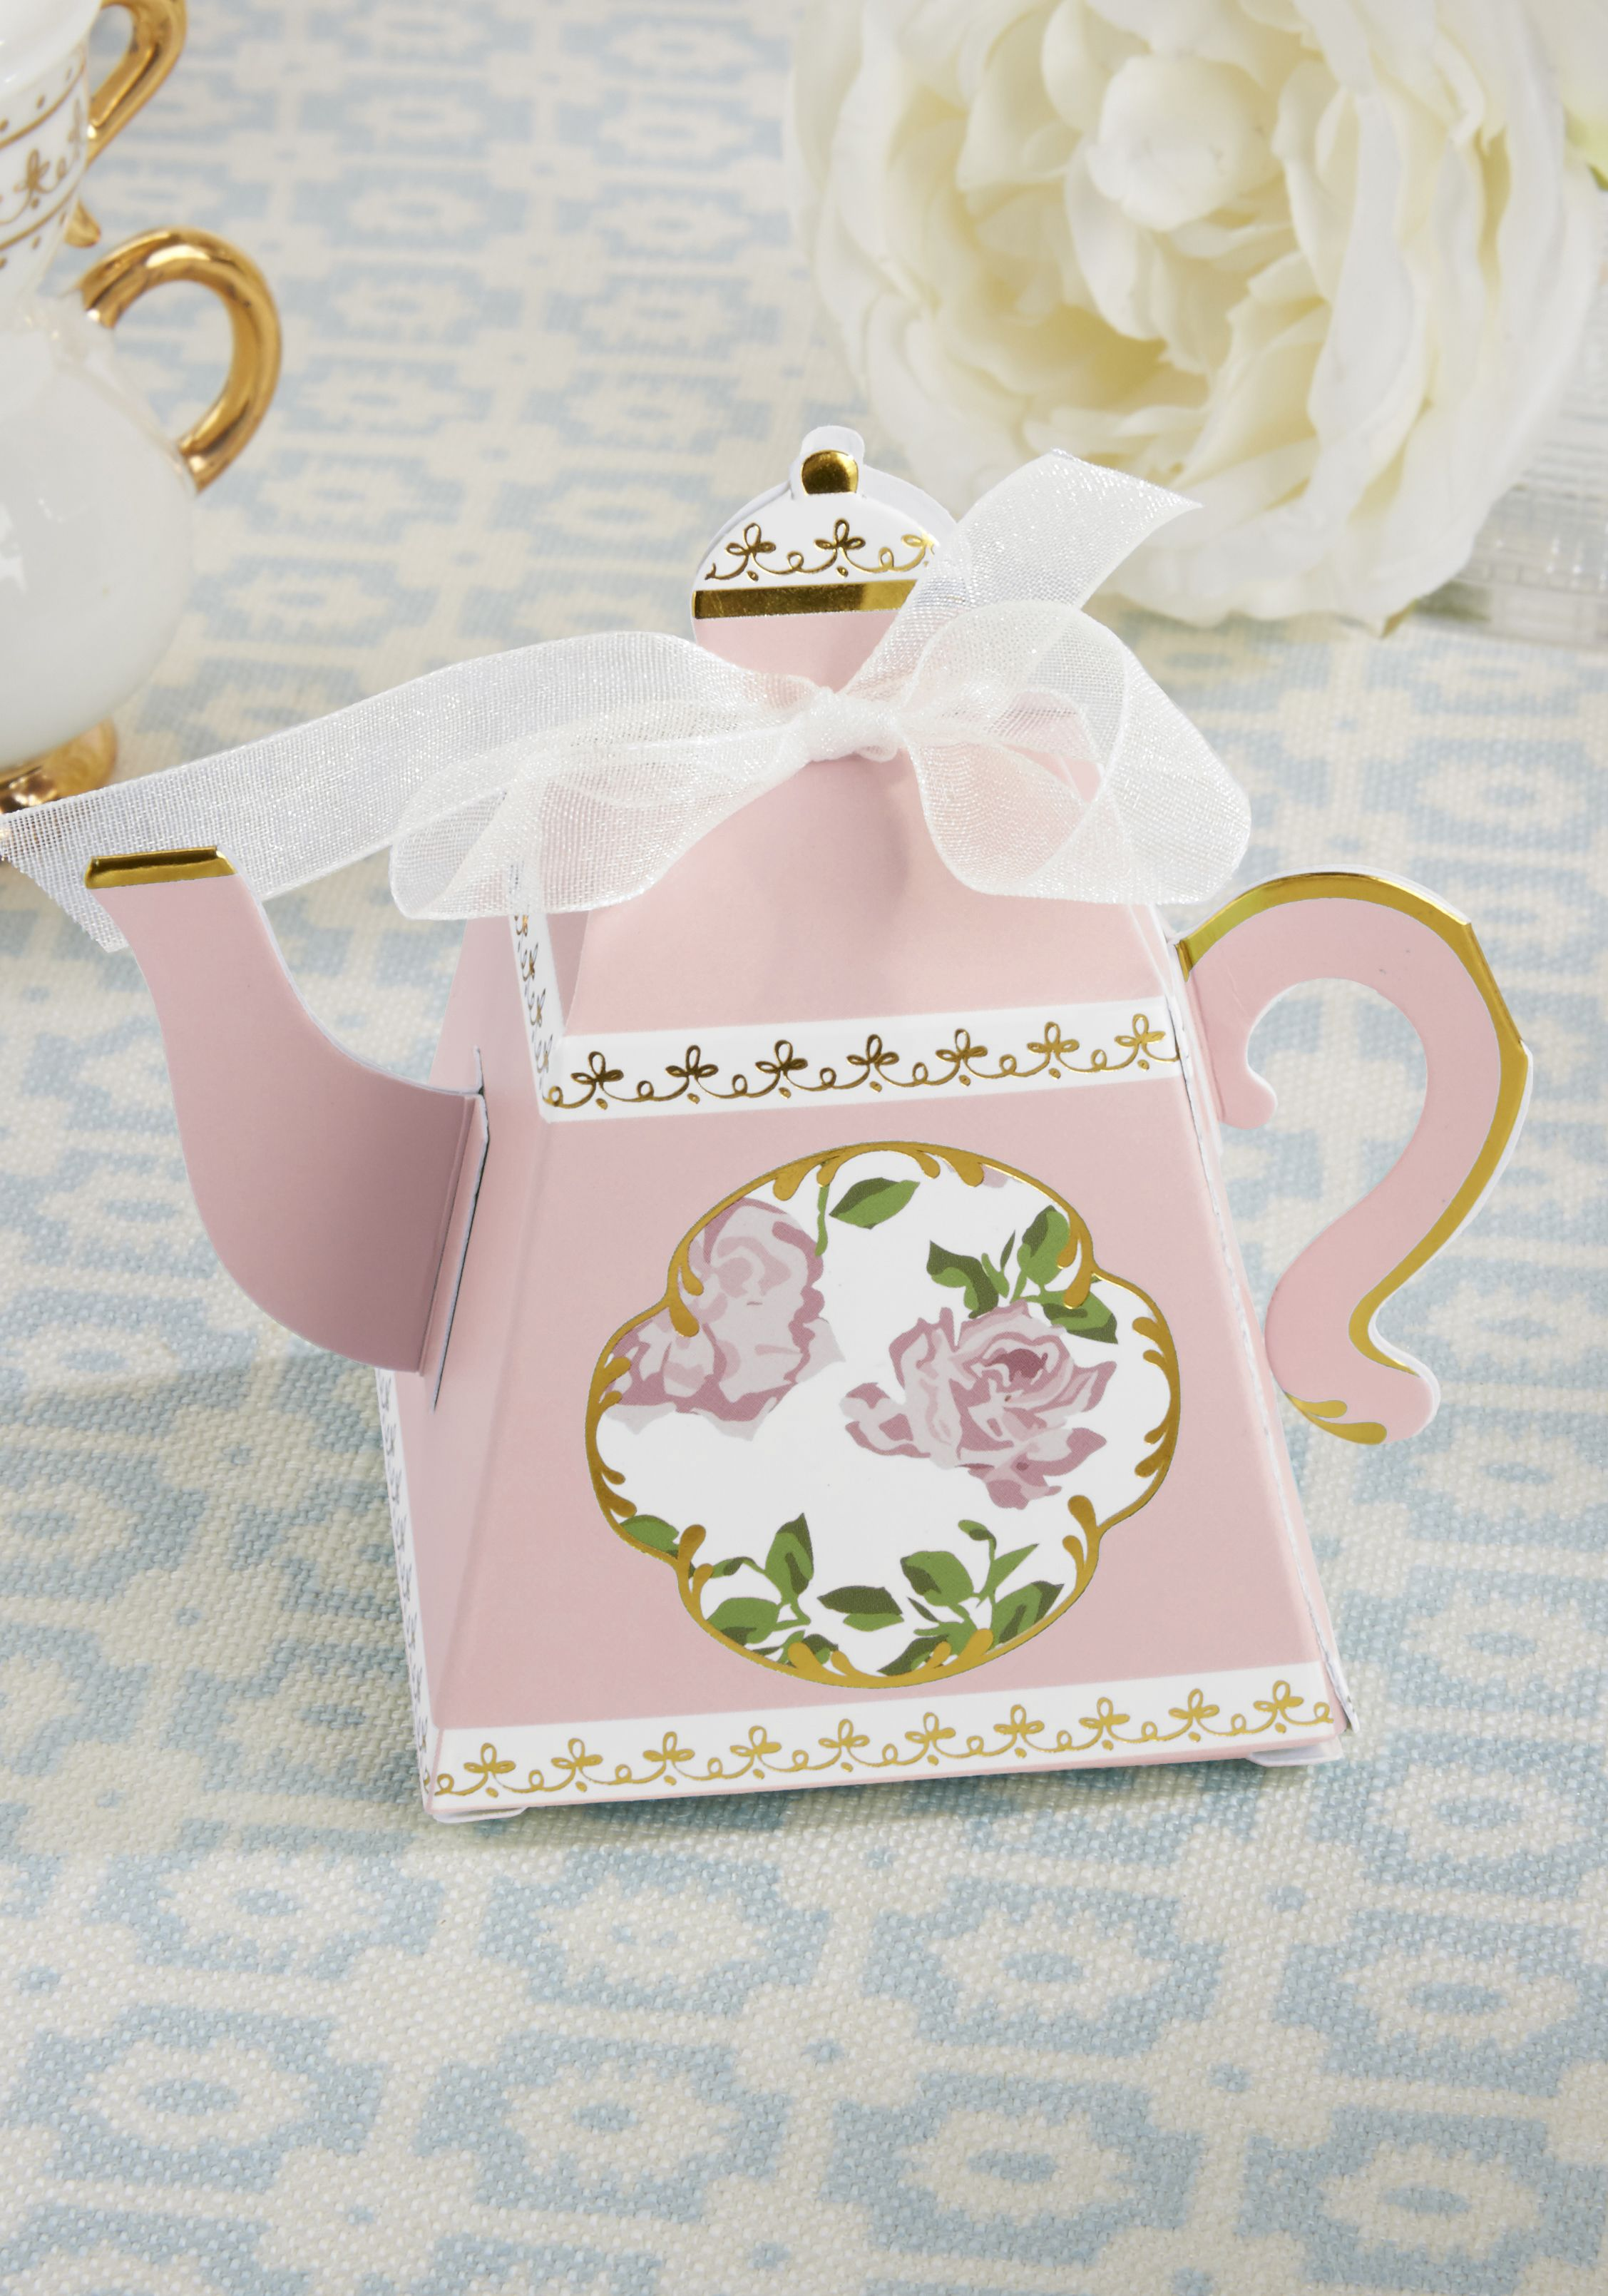 Tea Time Whimsy Teapot Favor Box - Pink (Set of 24) | Tea parties ...